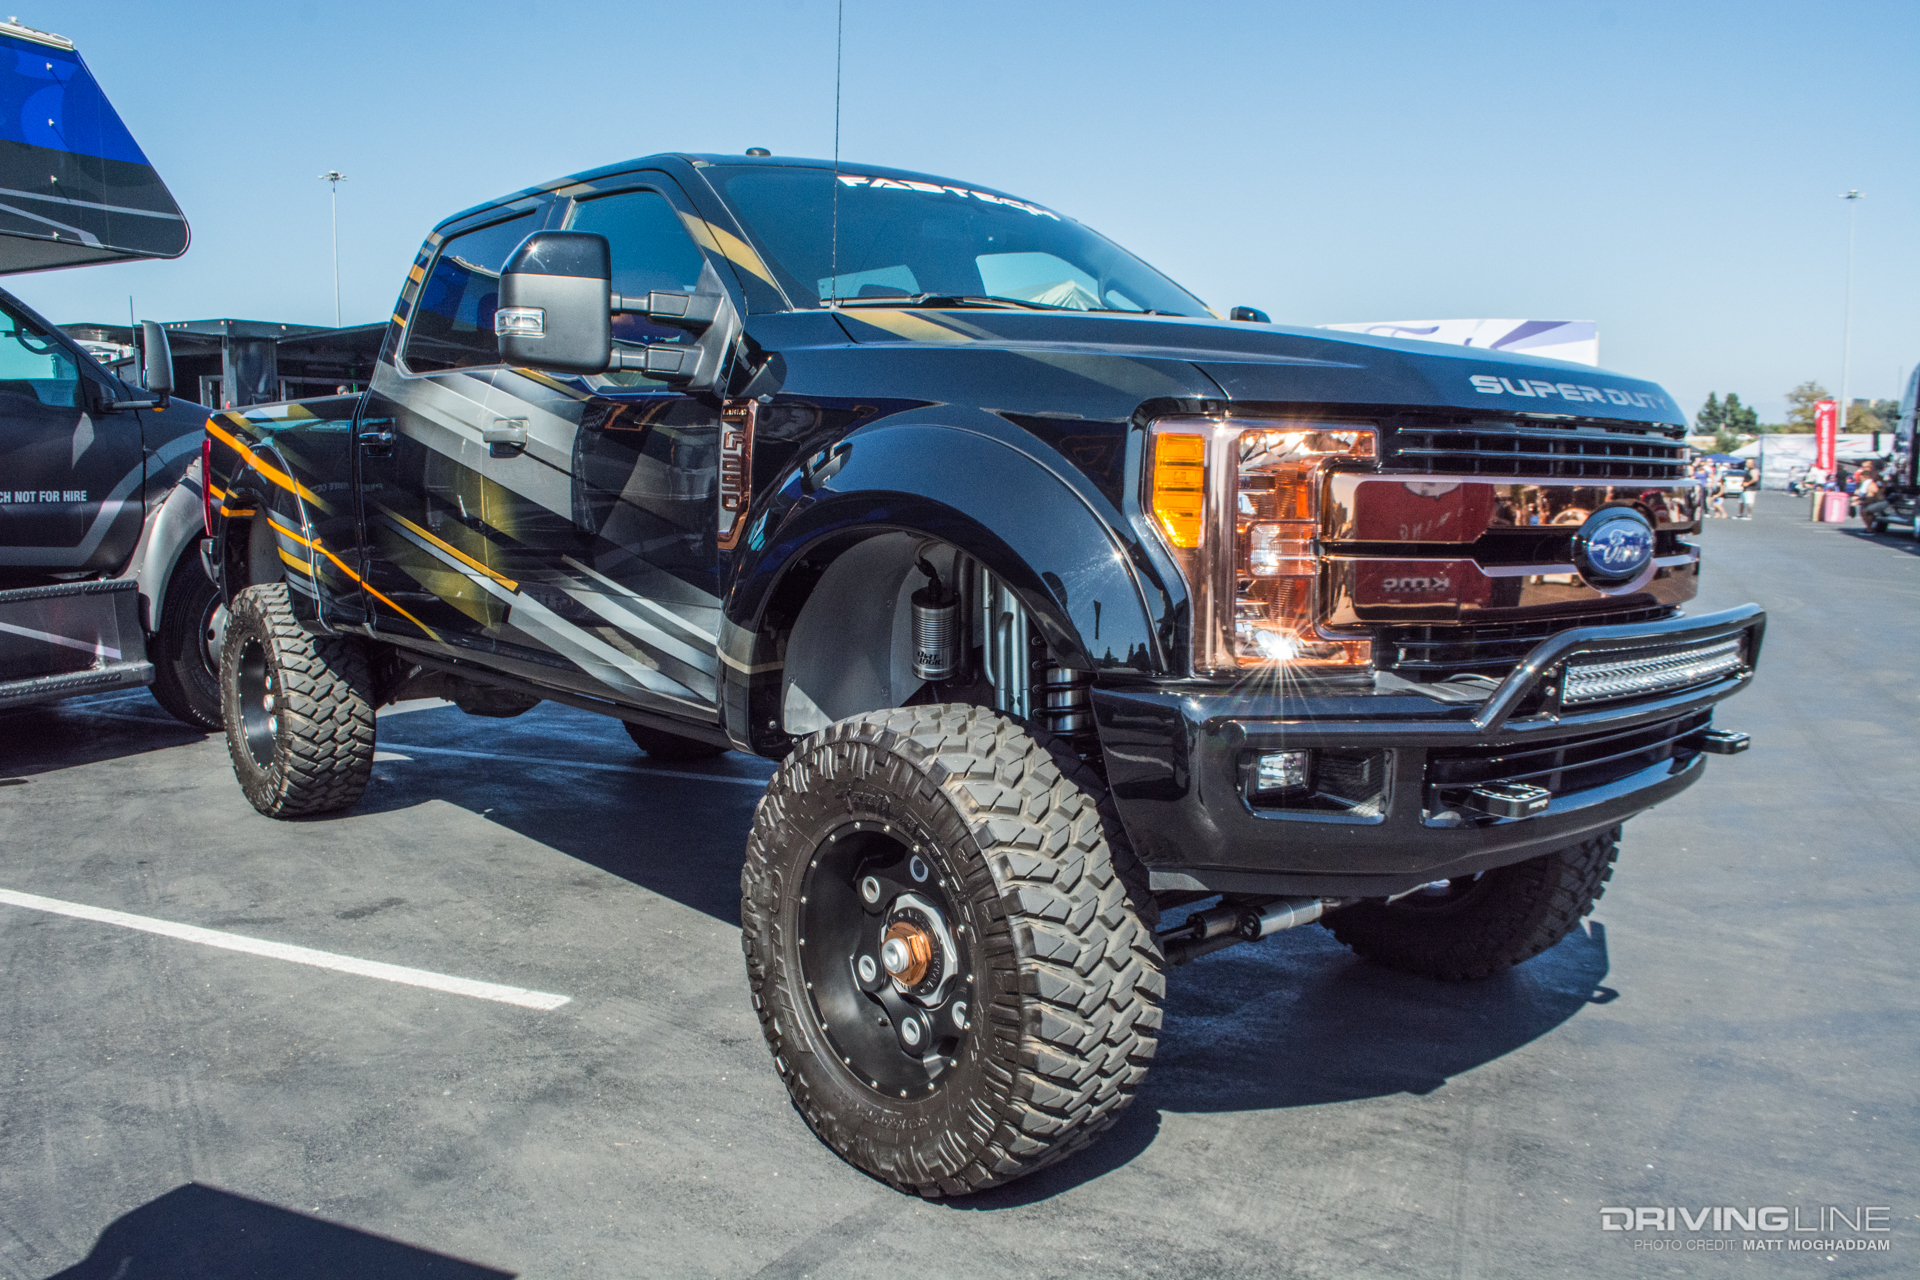 Ford Truck Enthusiast >> Top 3 at AED: Auto Enthusiast Day 2017 Editors' Picks | DrivingLine